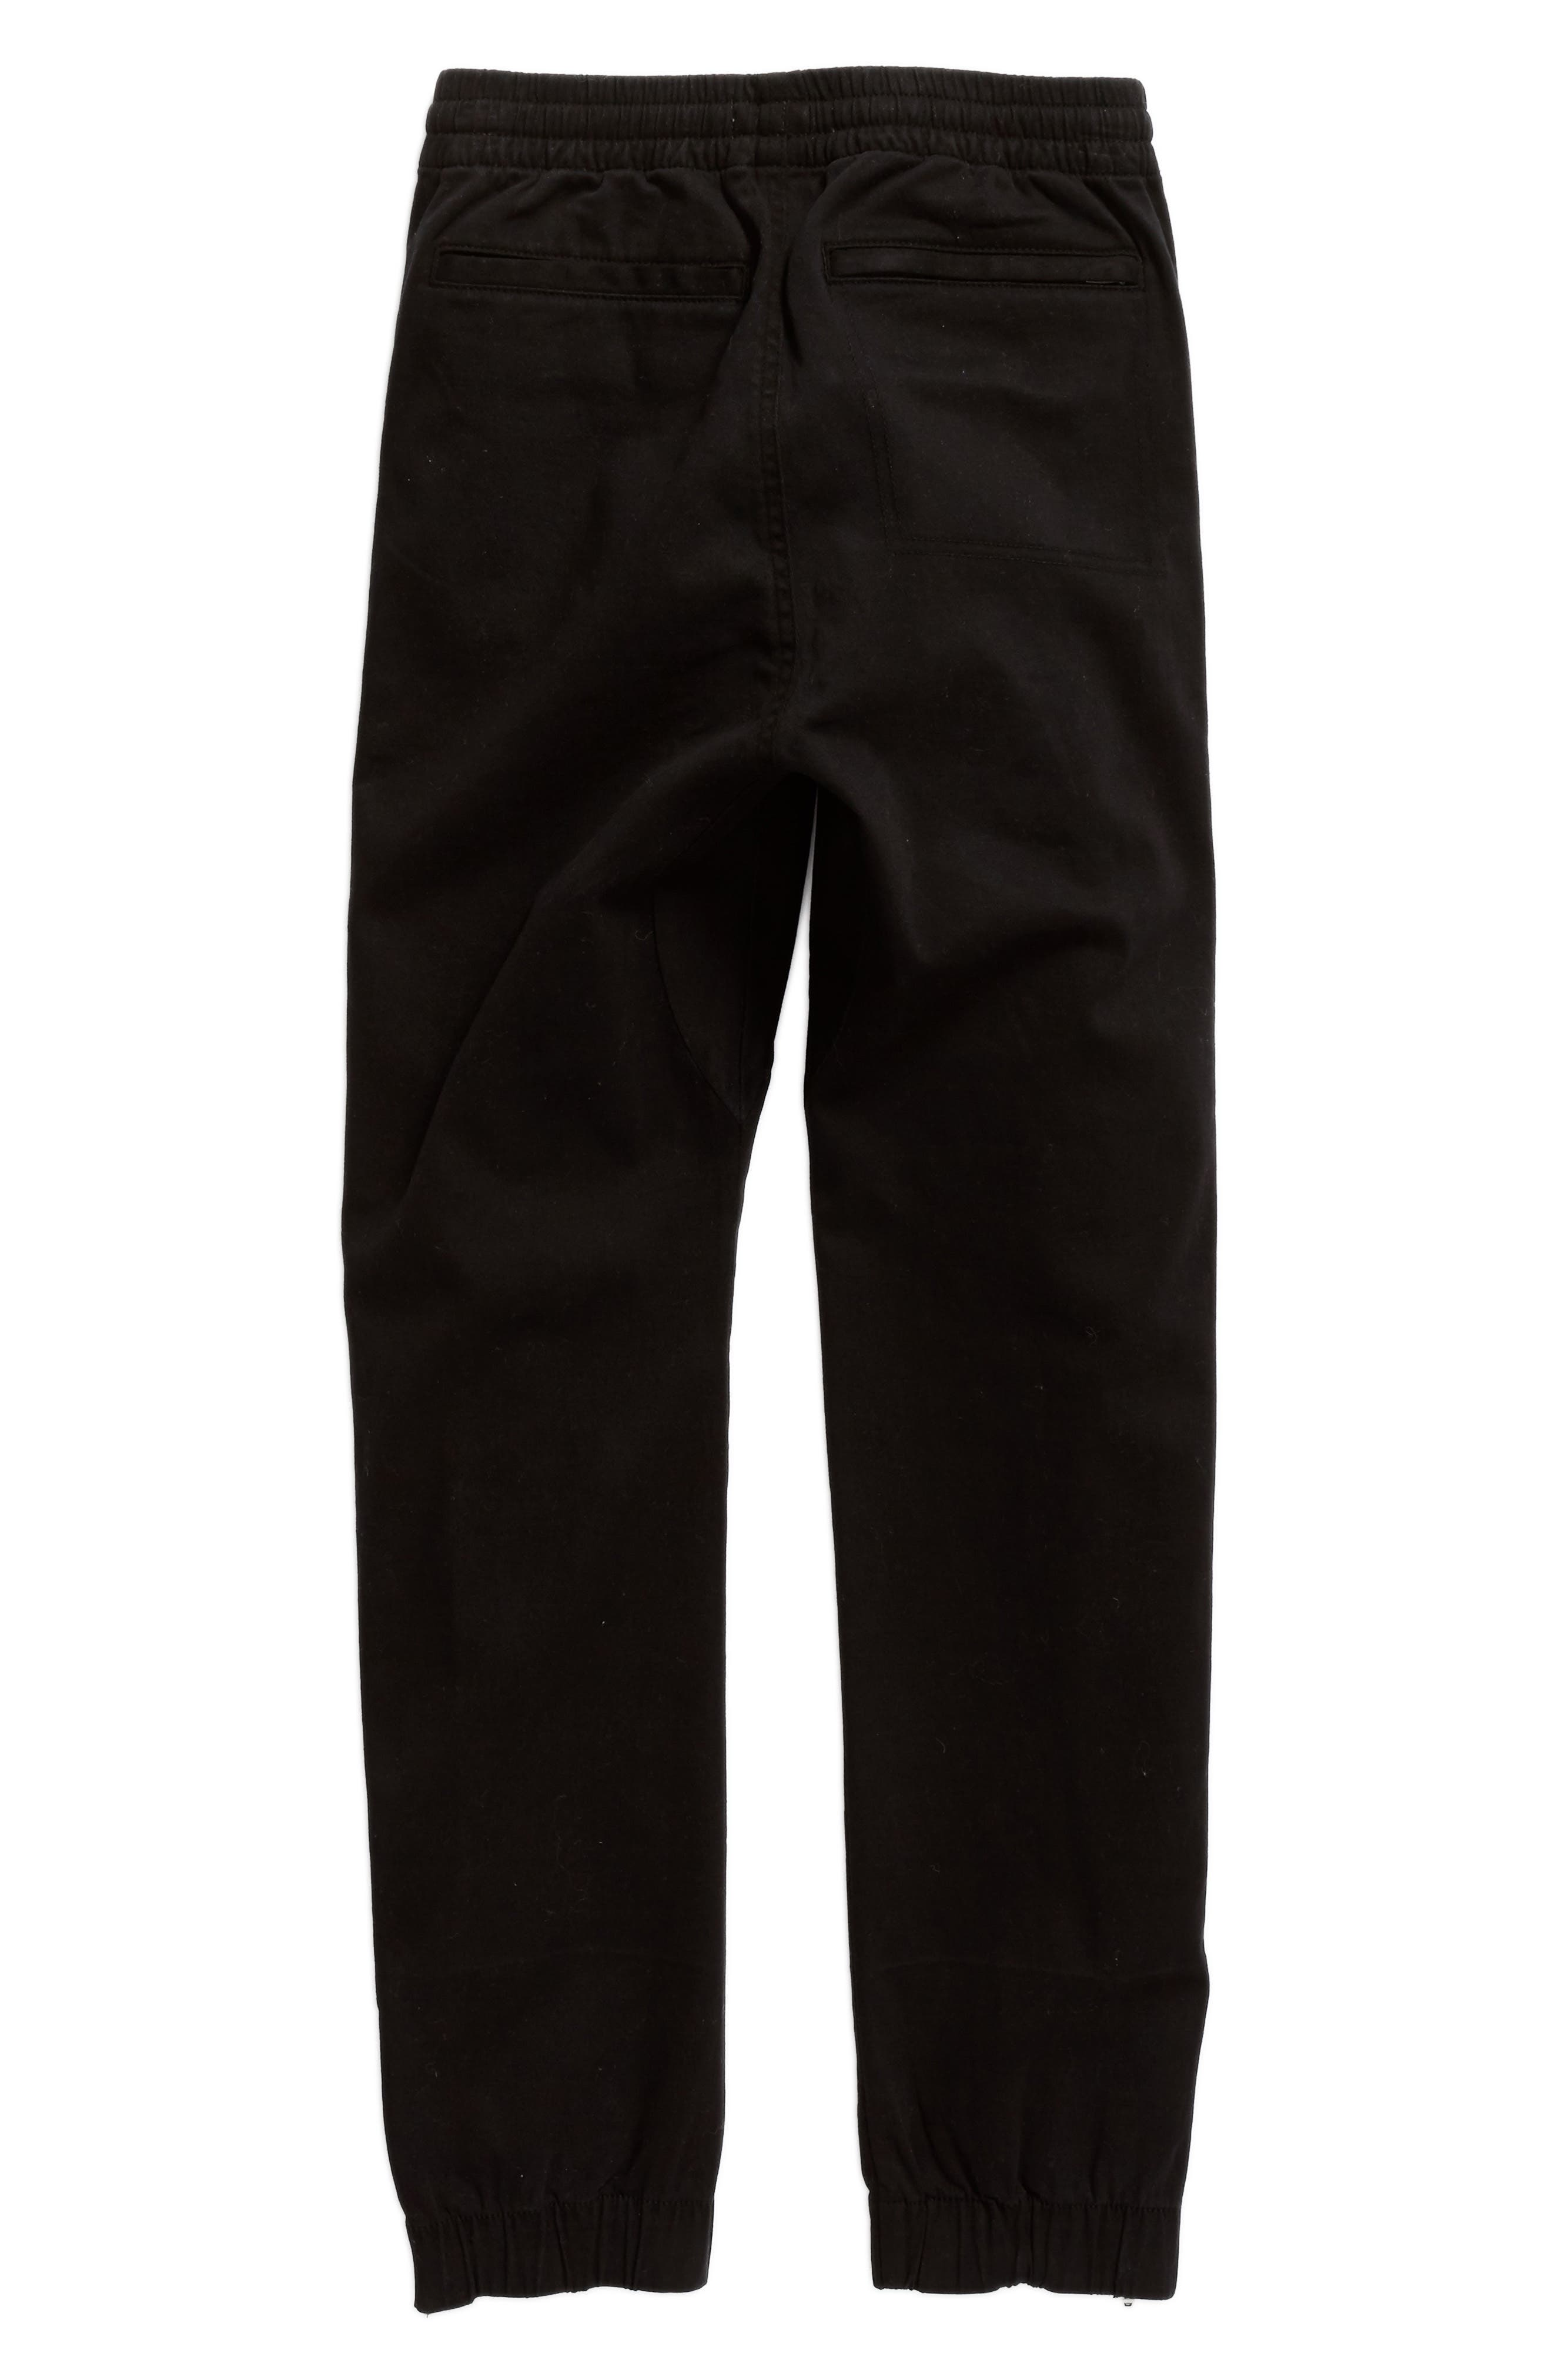 Washed Sweatpants,                             Alternate thumbnail 5, color,                             Black